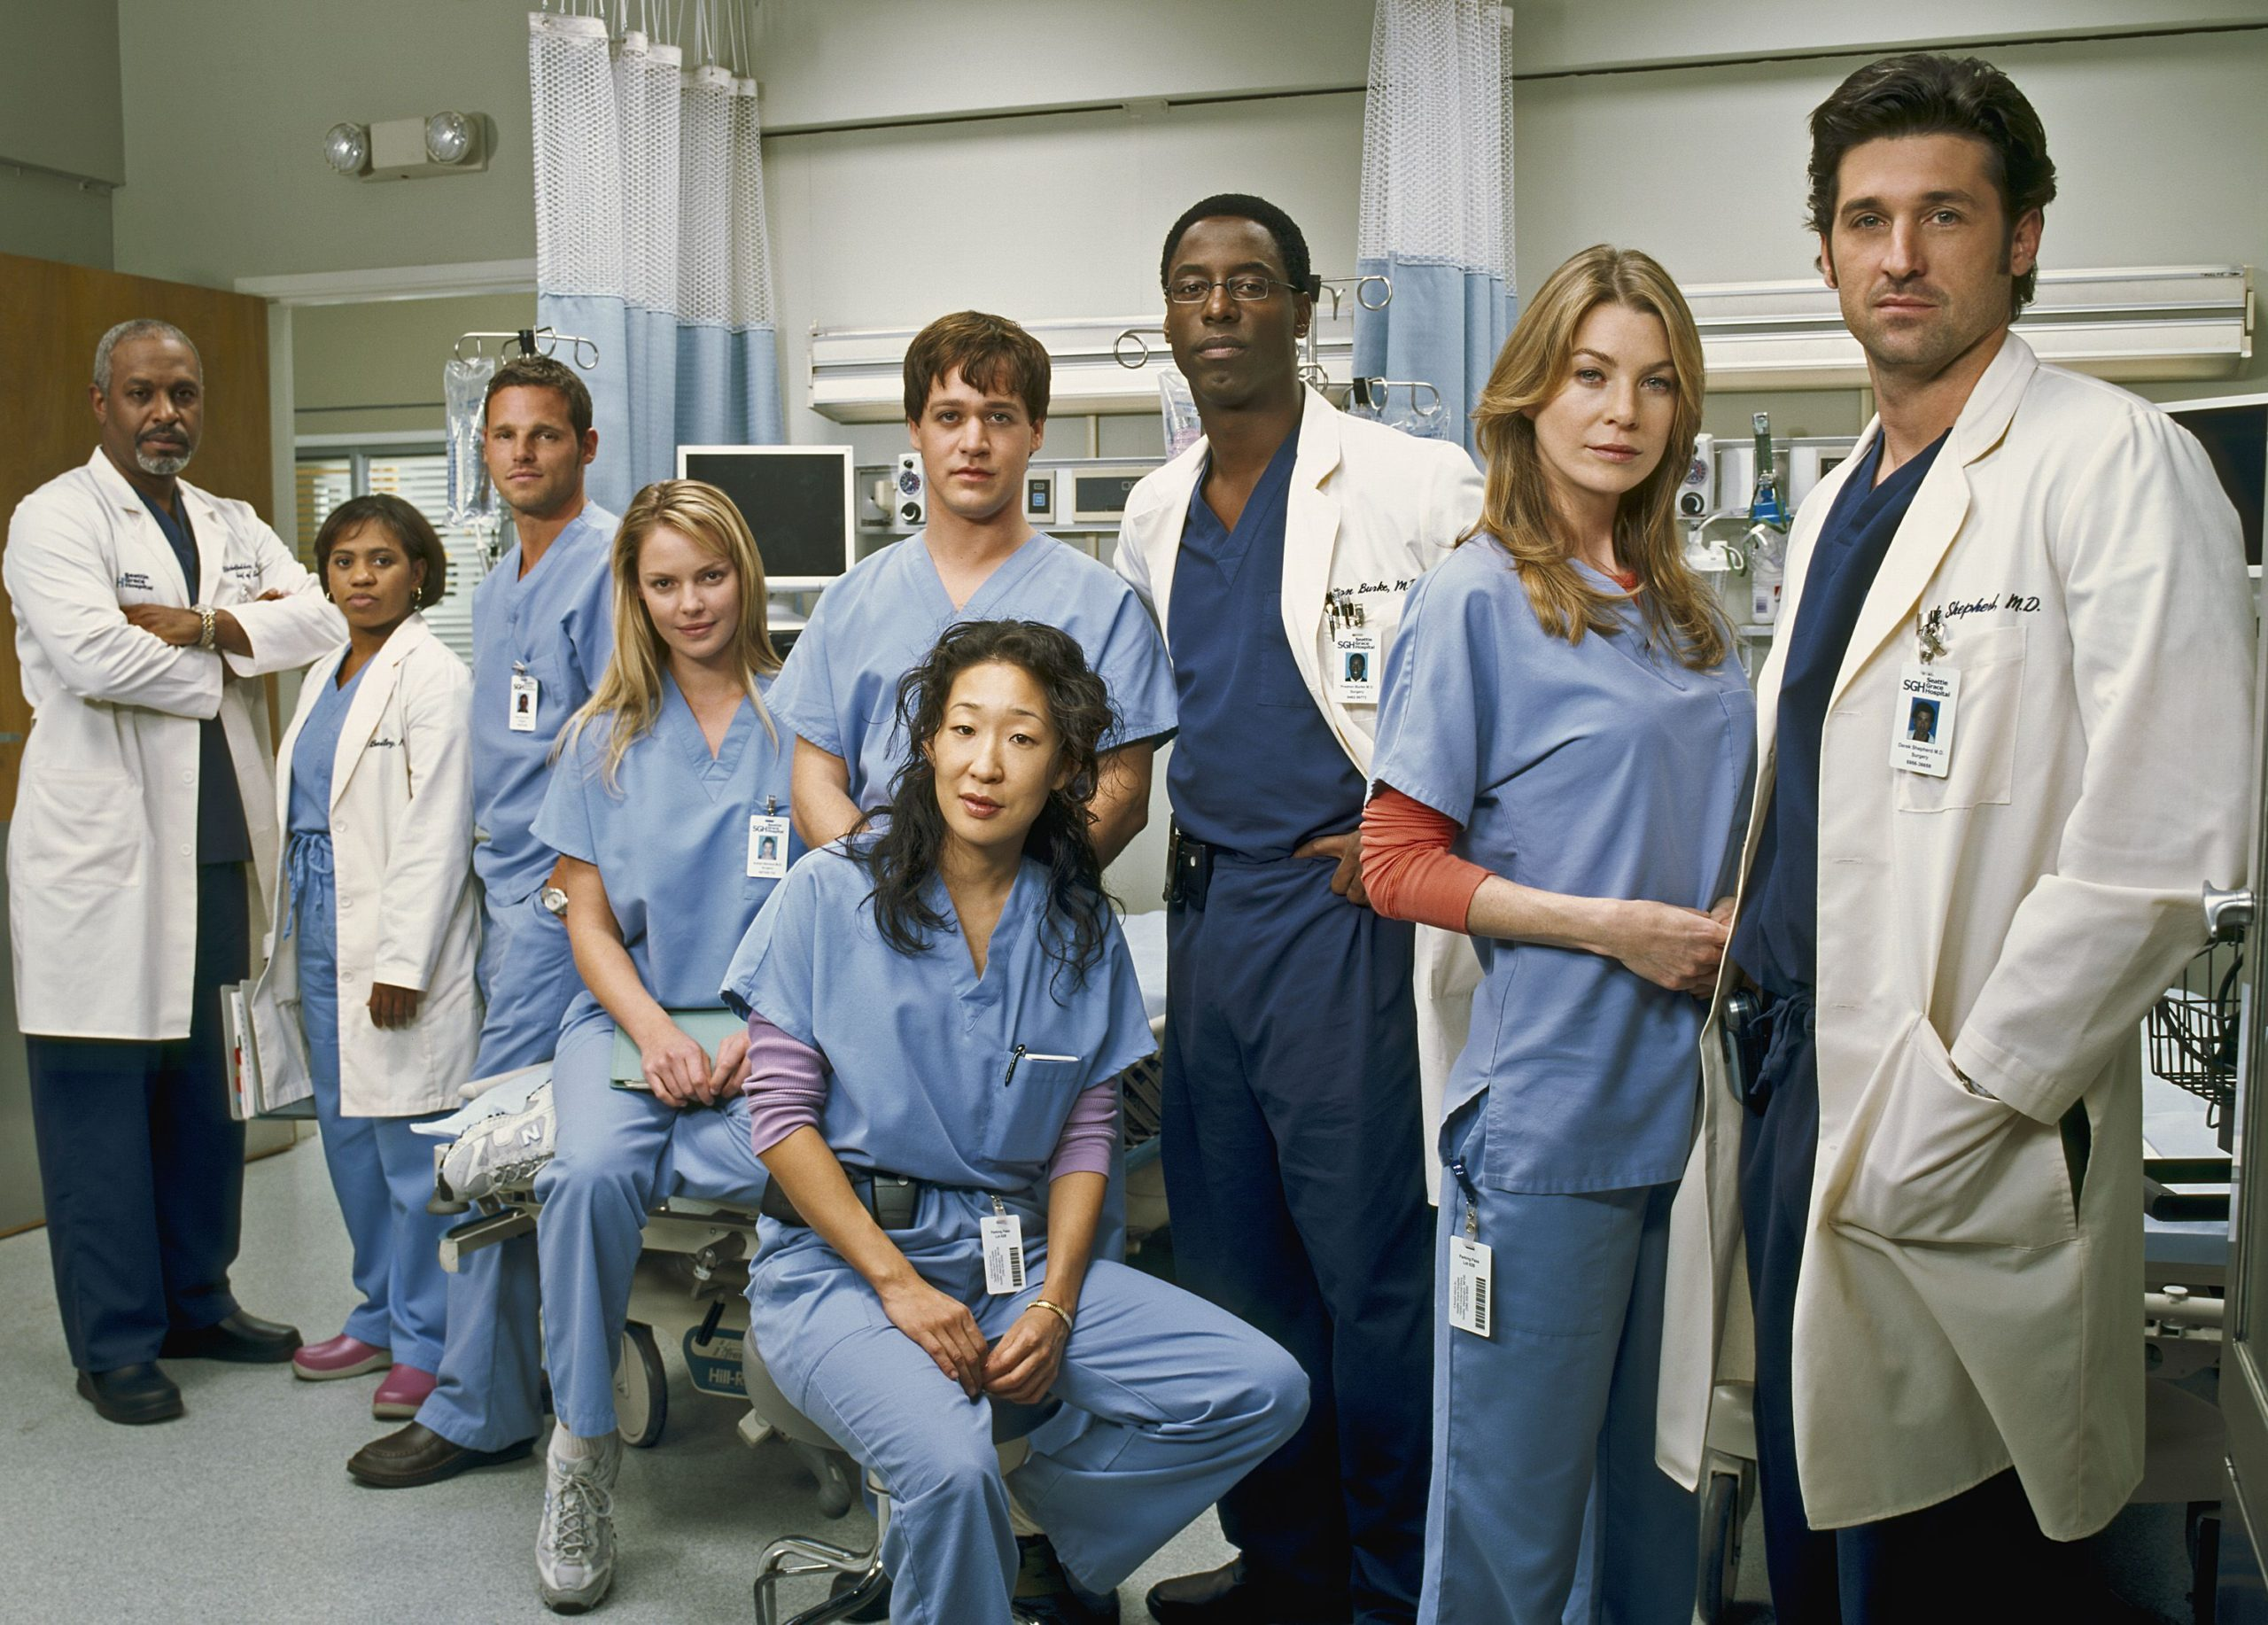 Cast of Grey's Anatomy standing together